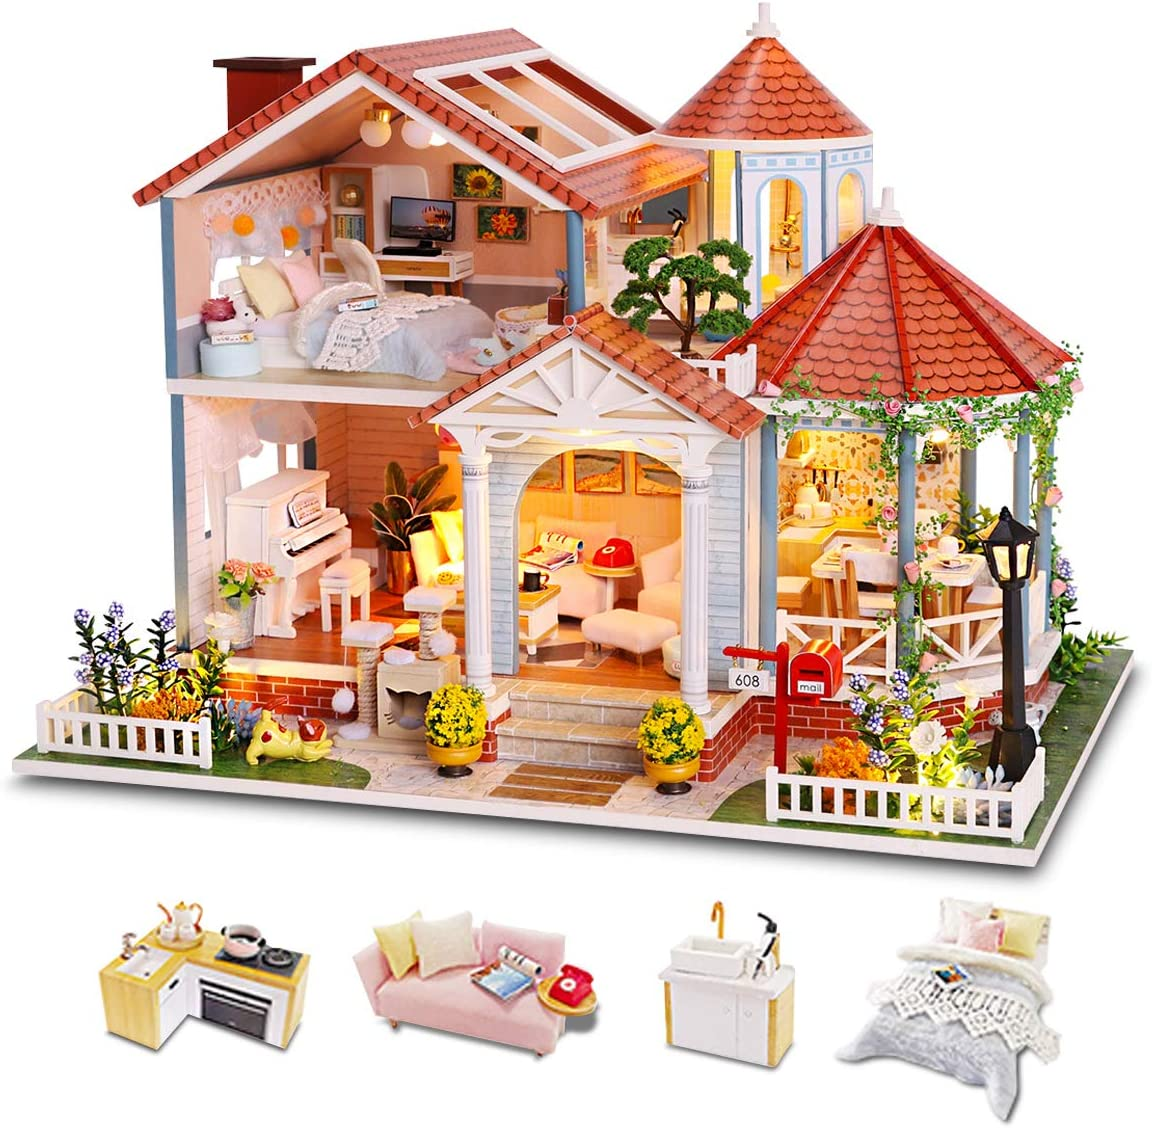 GuDoQi DIY Miniature Dollhouse Kit, Mini Dollhouse with Furniture, Tiny House Kit Plus Dust Cover and Music Movement, DIY Miniature Kits to Build, Great Handmade Crafts Gift Idea